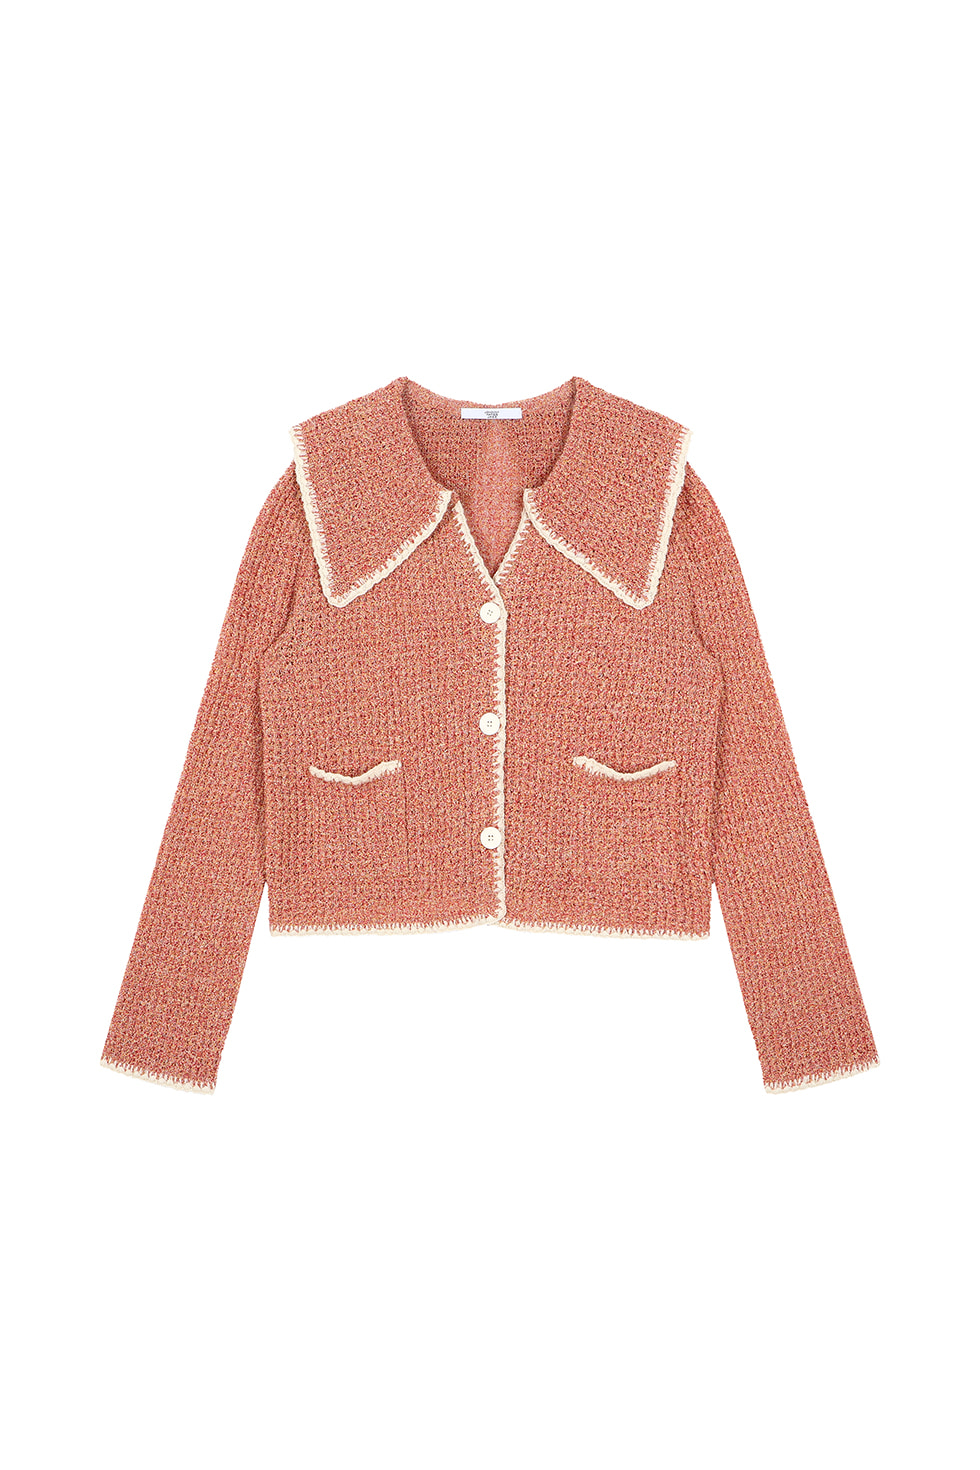 WIDE COLLAR CARDIGAN - RED